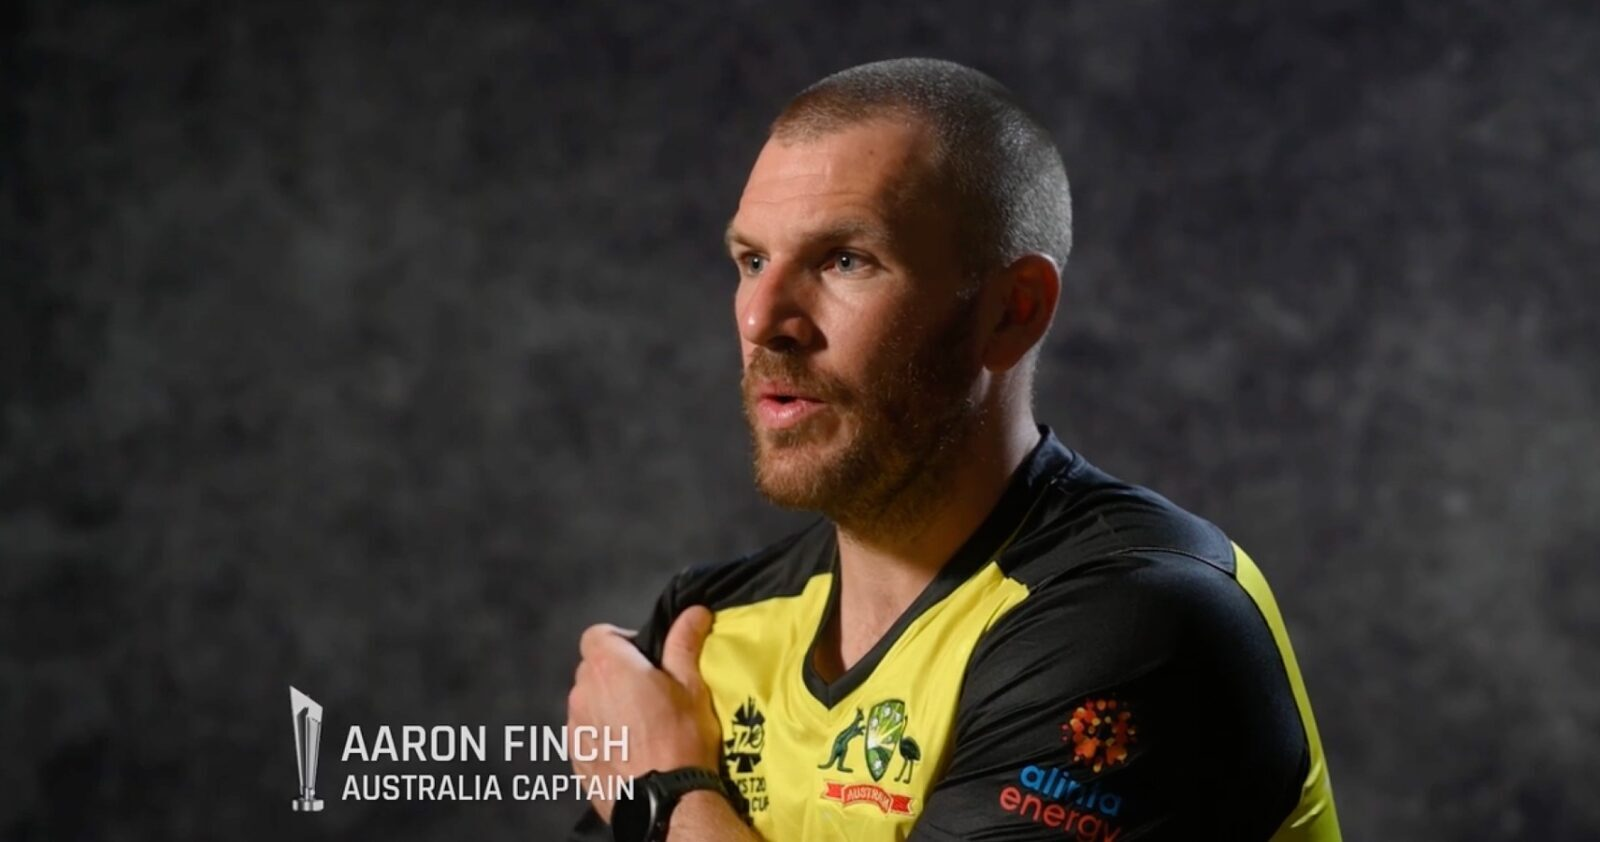 T20-World-Cup-Aaron-Finch